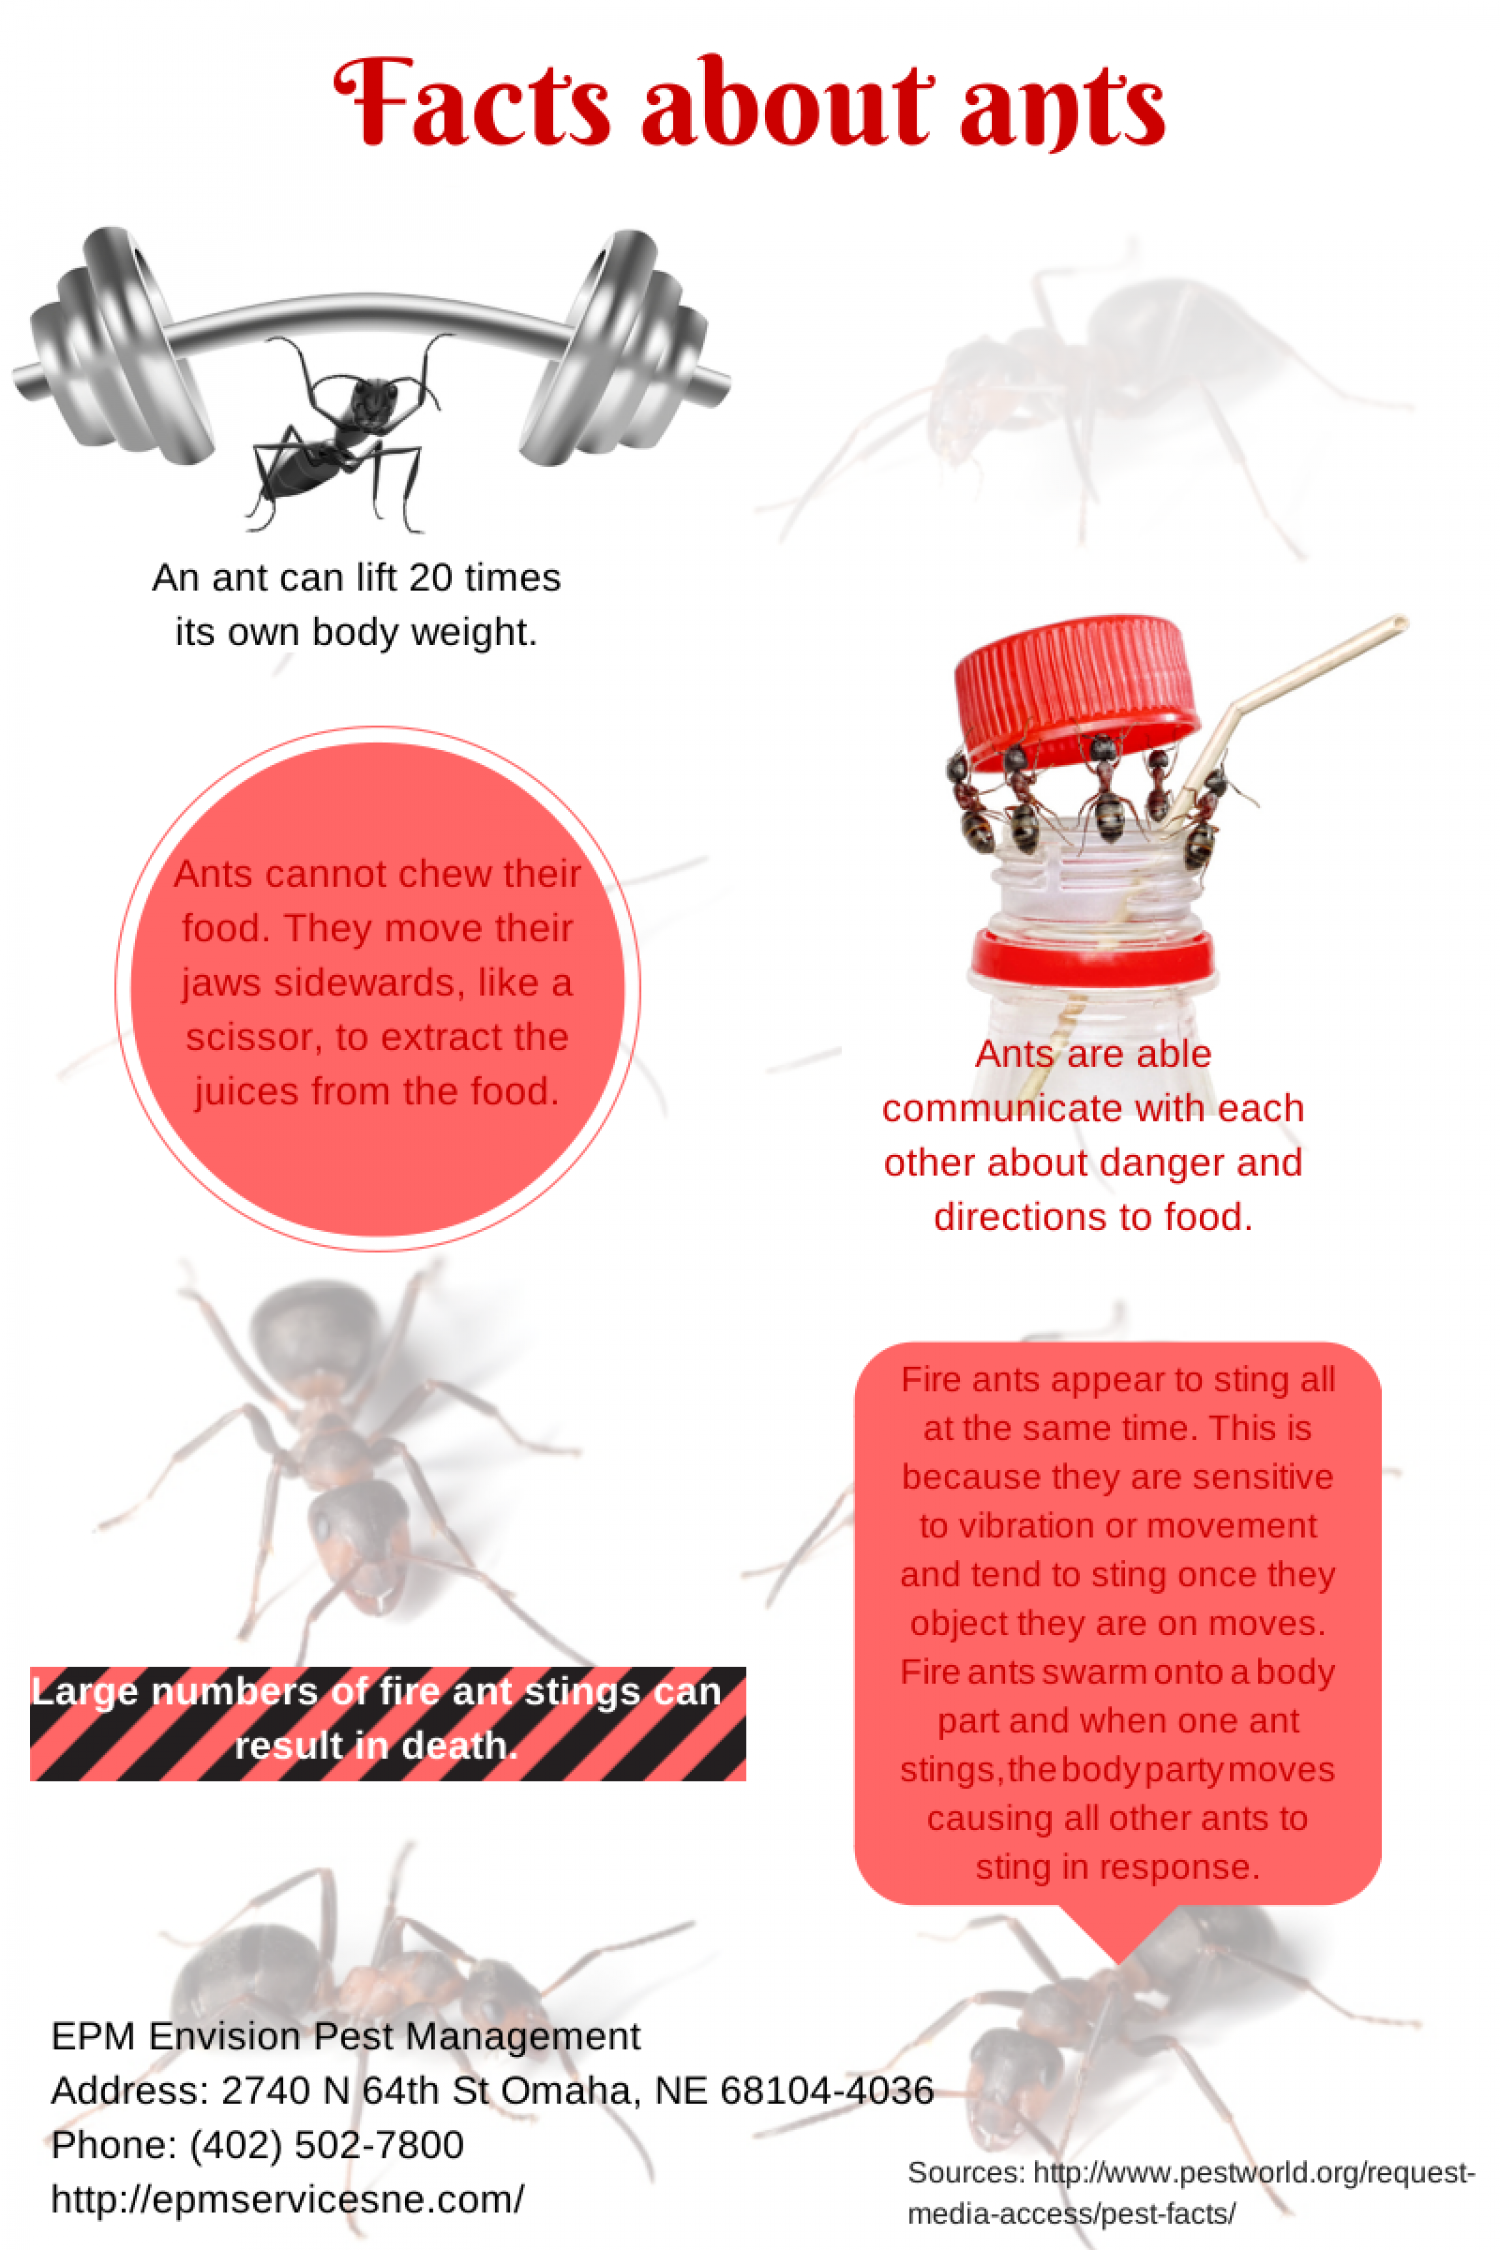 Facts About Ants Infographic